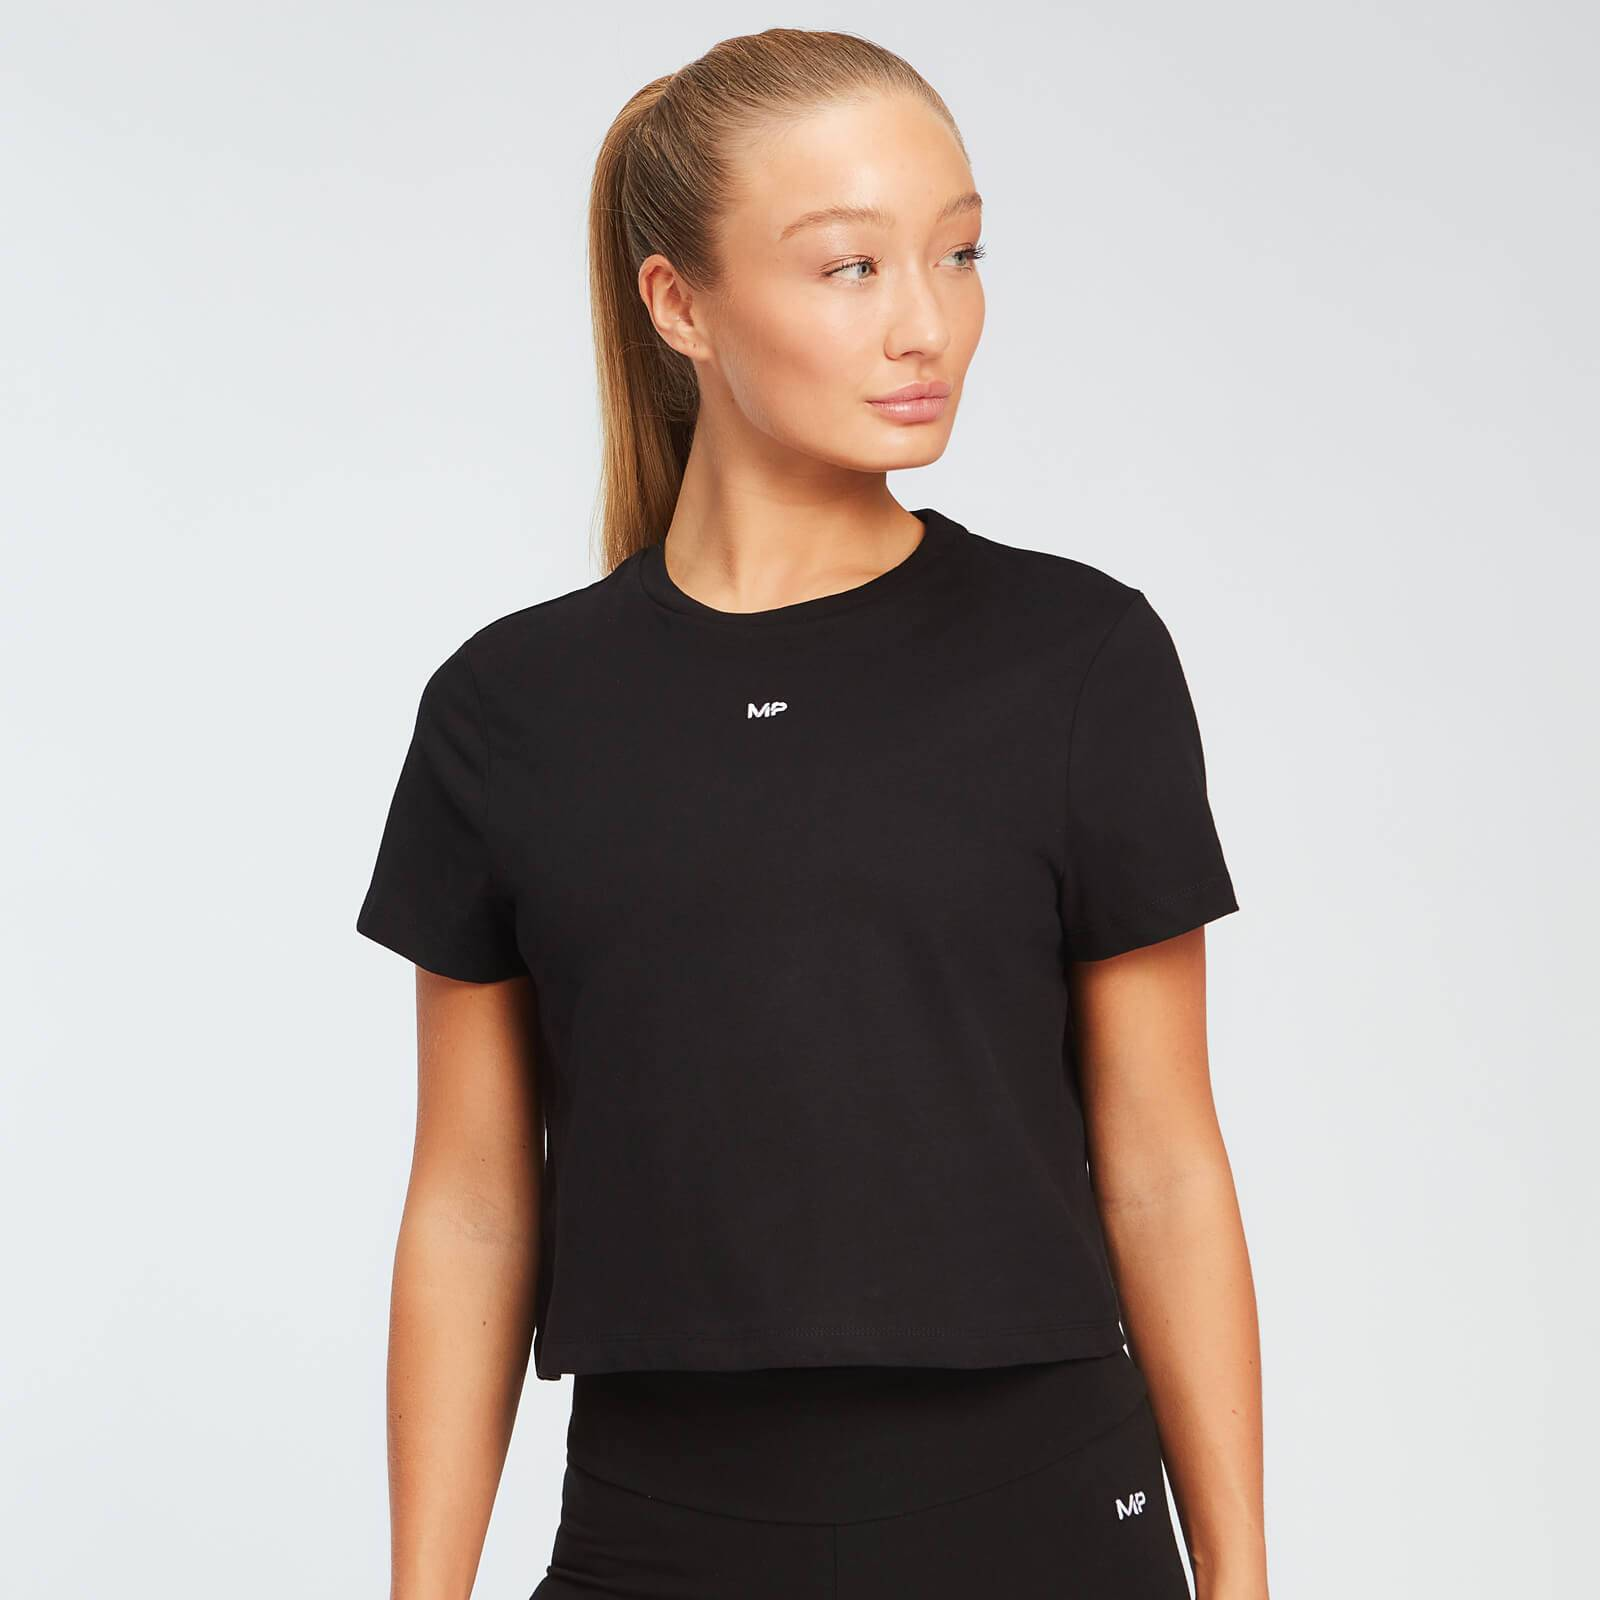 Myprotein T-shirt corta MP Essentials da donna - Nera - L